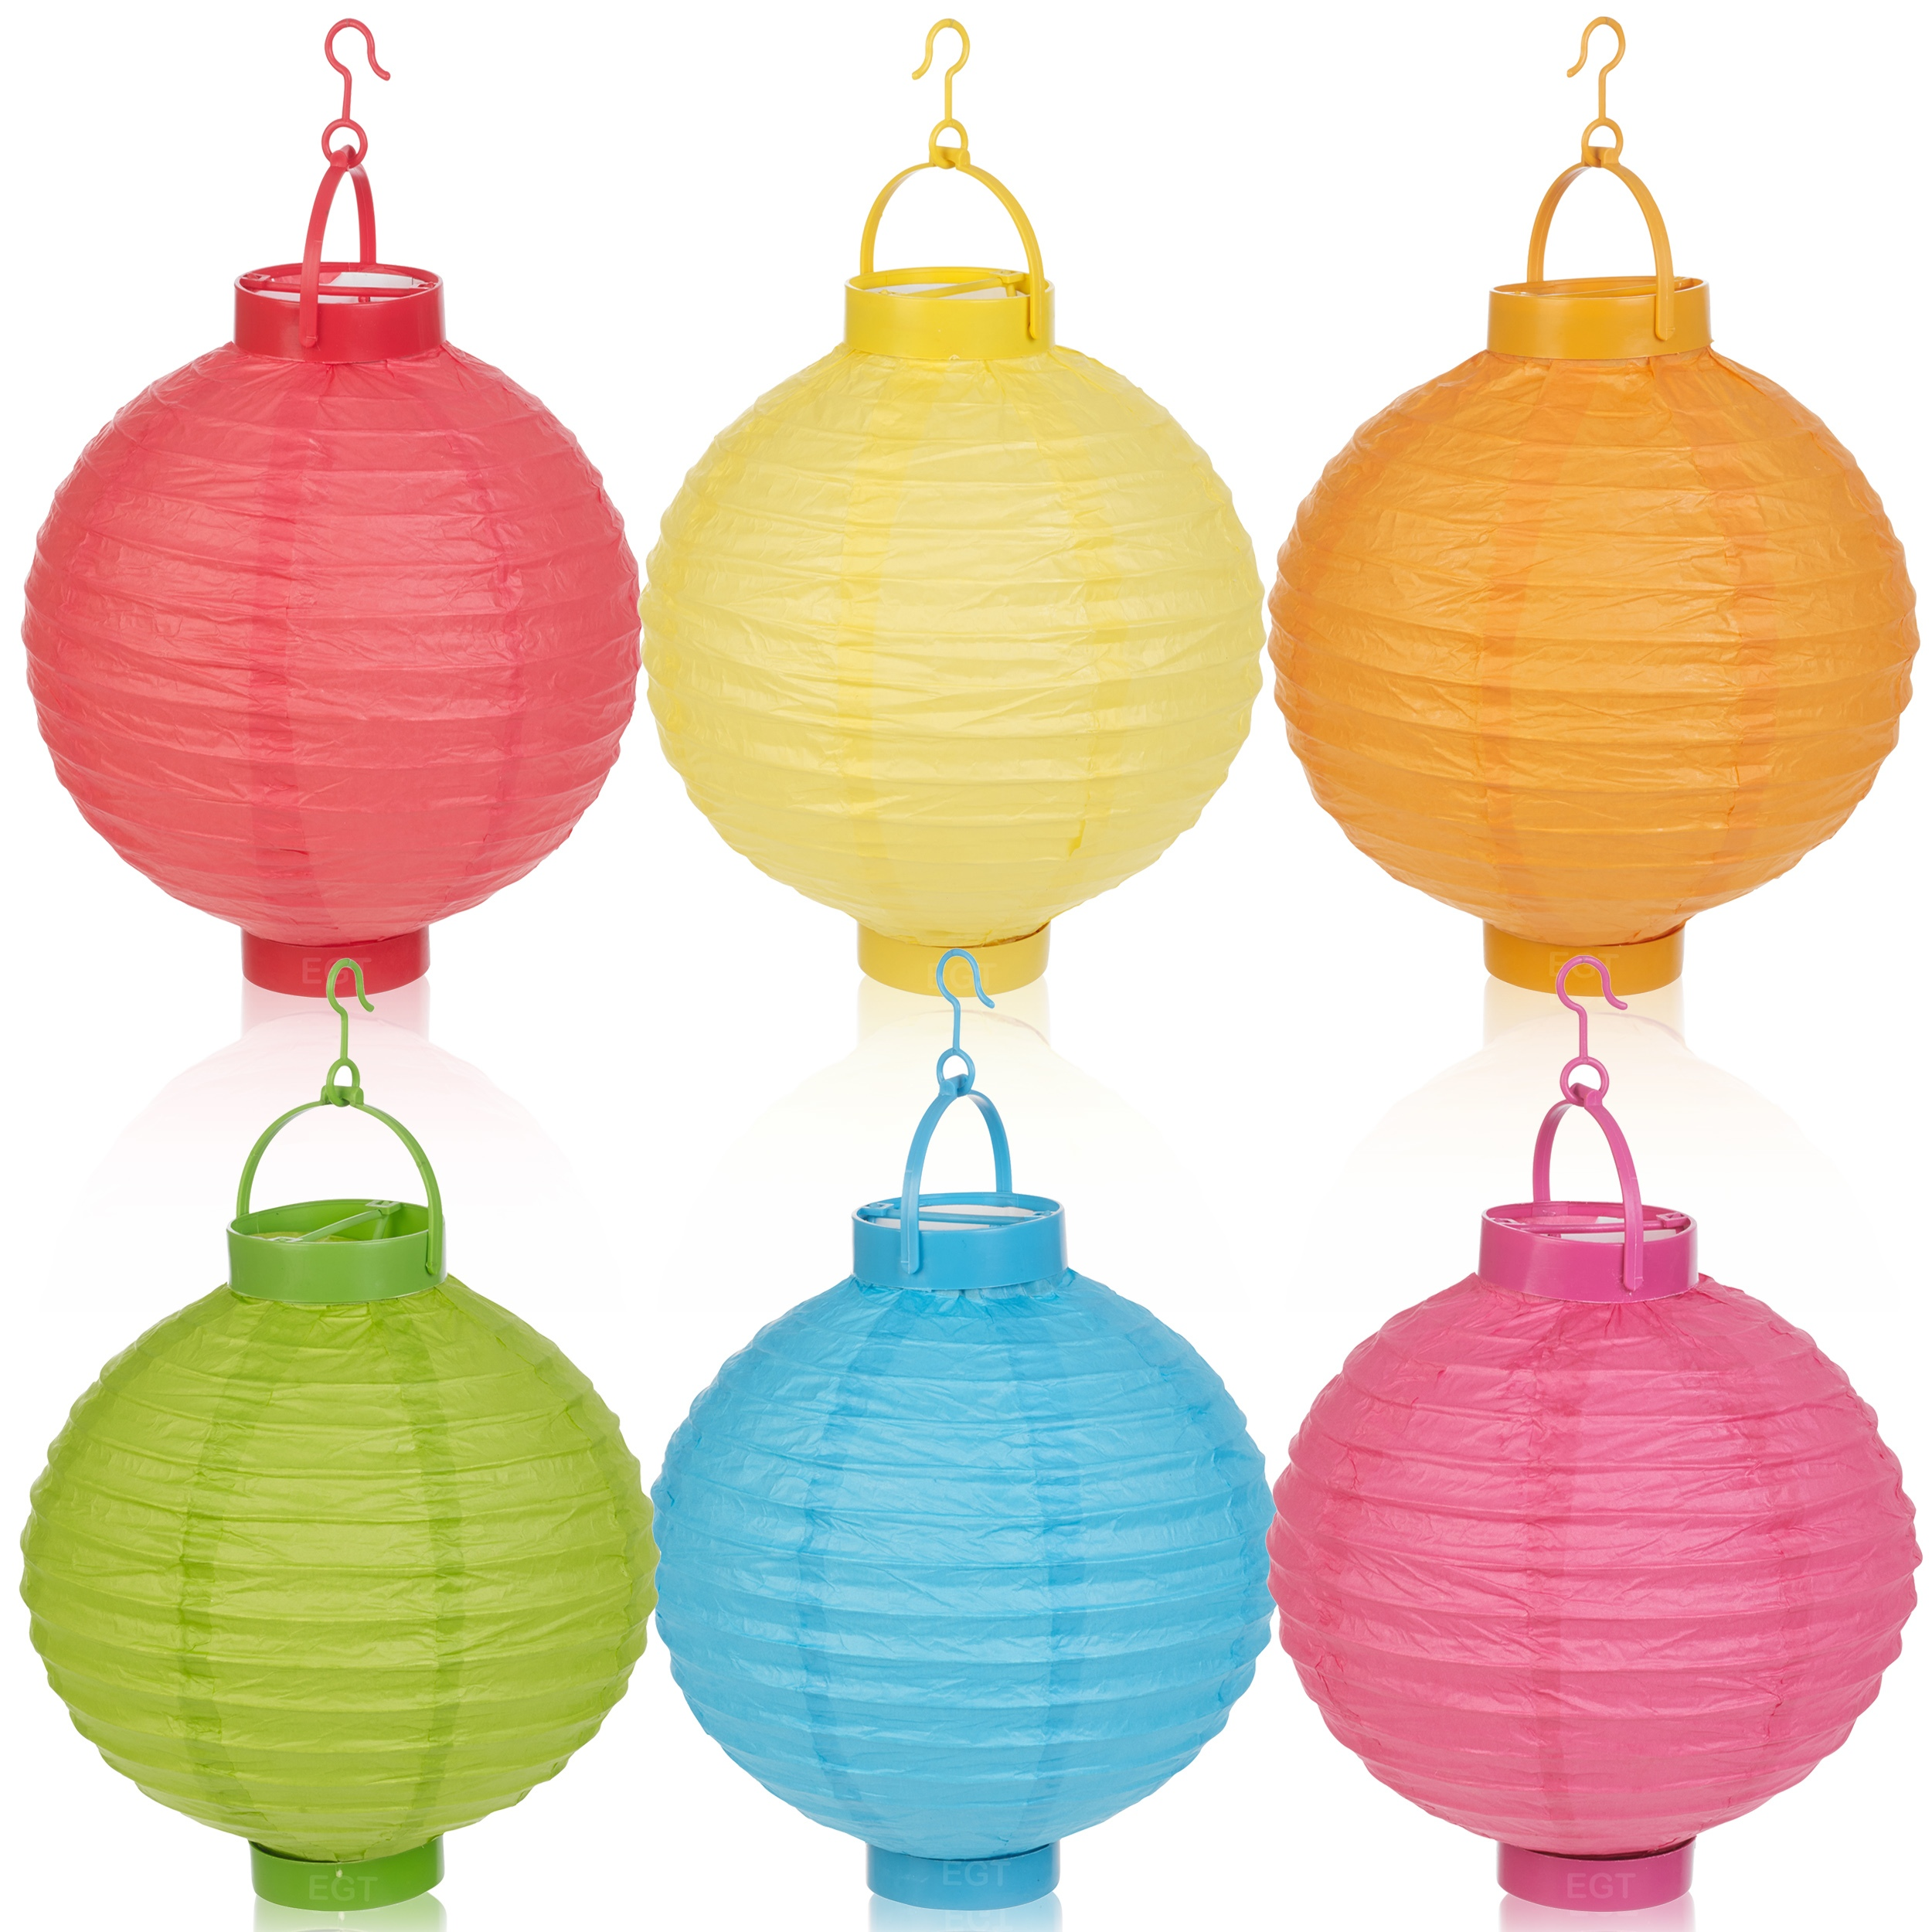 hanging chinese led light paper lantern party wedding xmas decoration. Black Bedroom Furniture Sets. Home Design Ideas